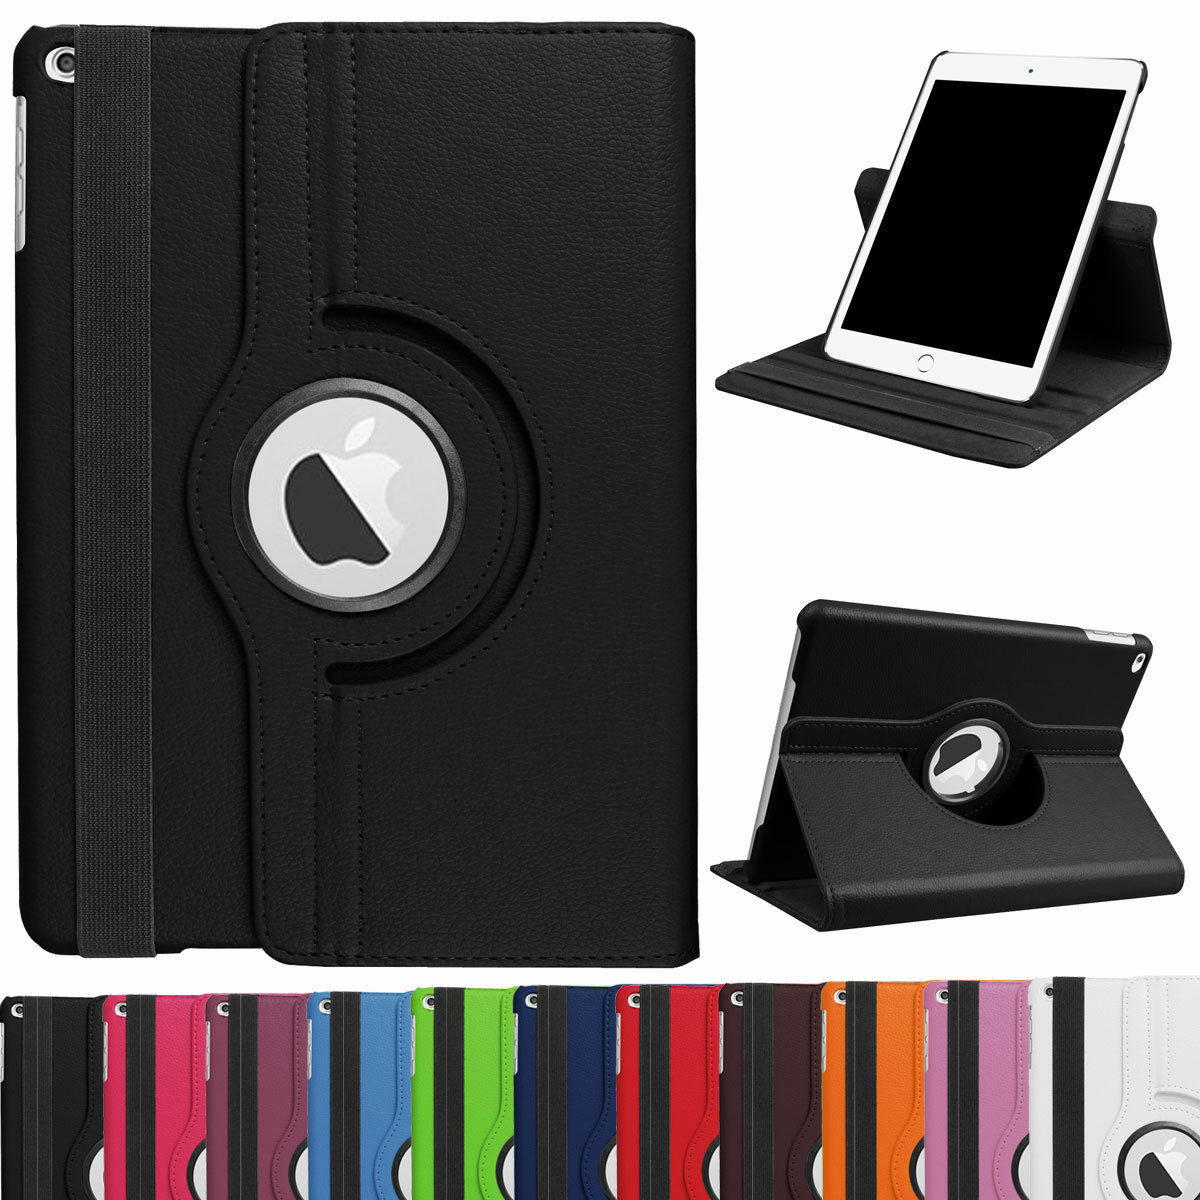 360° Rotating Shockproof Stand Leather Case For iPad Mini Air 1 2 3 4 5 6 Cover 2